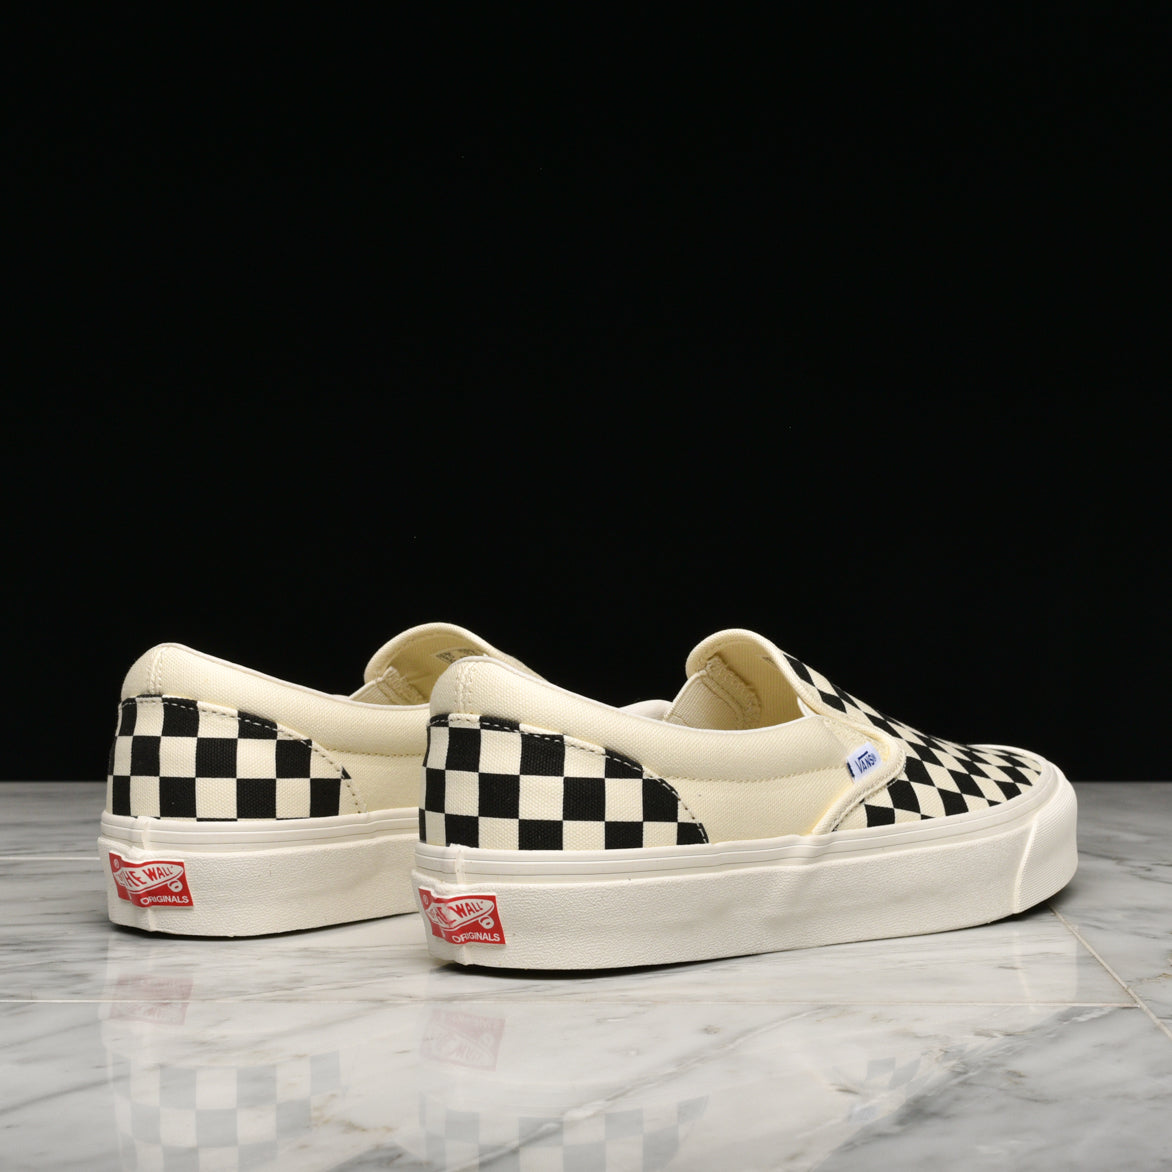 OG CLASSIC SLIP-ON LX - CHECKERBOARD